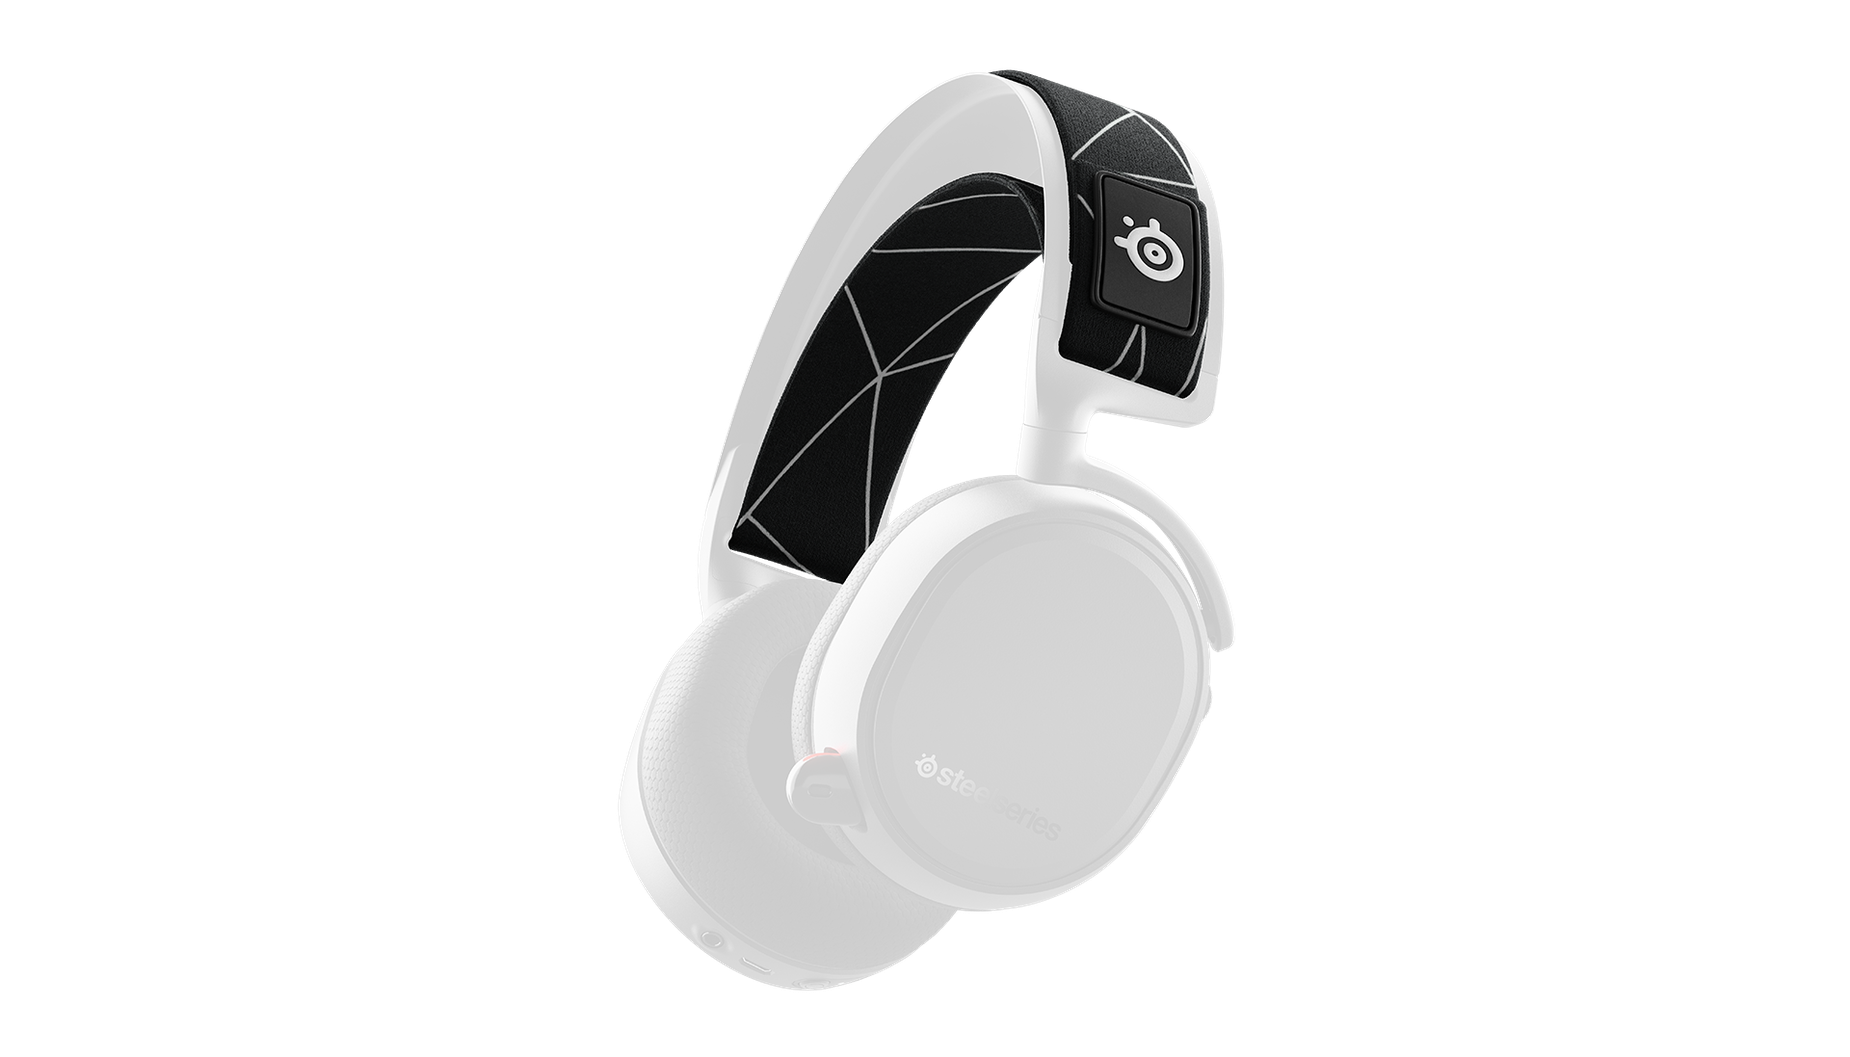 A render of the Arctis 9 headset with the headset opacity lowered and the headband highlighted